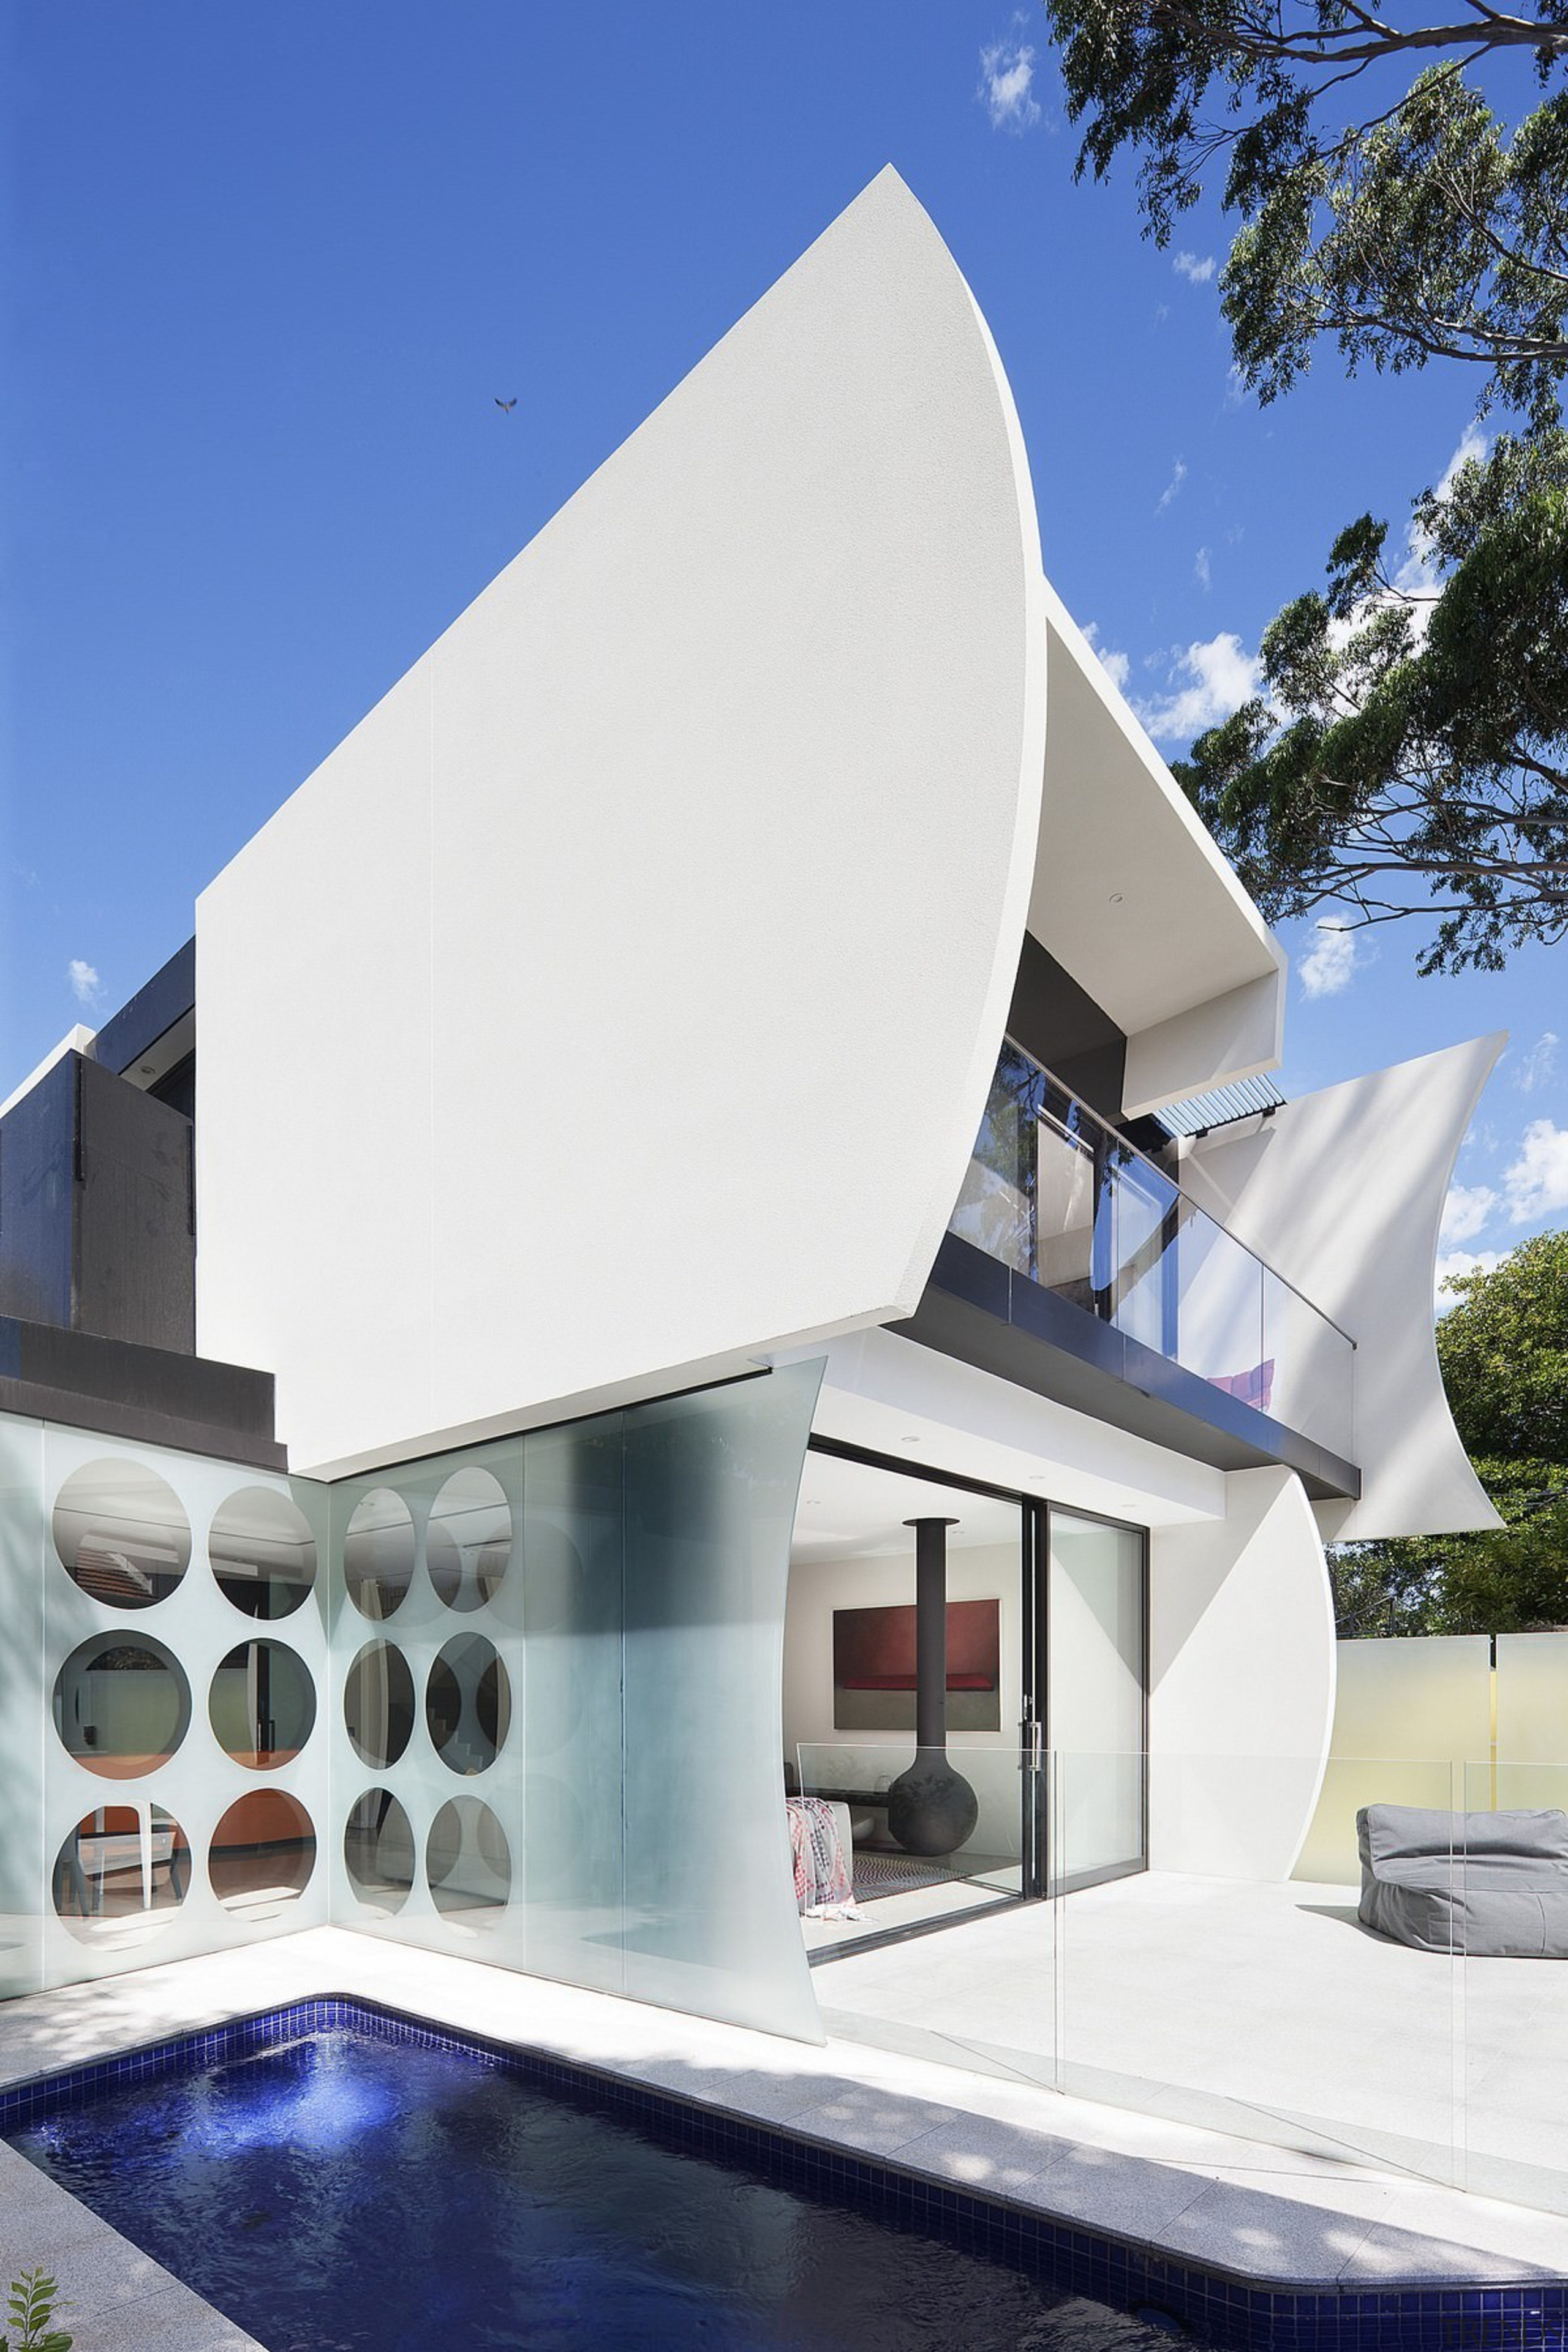 Architect: Gray PuksandPhotography by Shannon McGrath architecture, building, daylighting, facade, home, house, property, white, blue